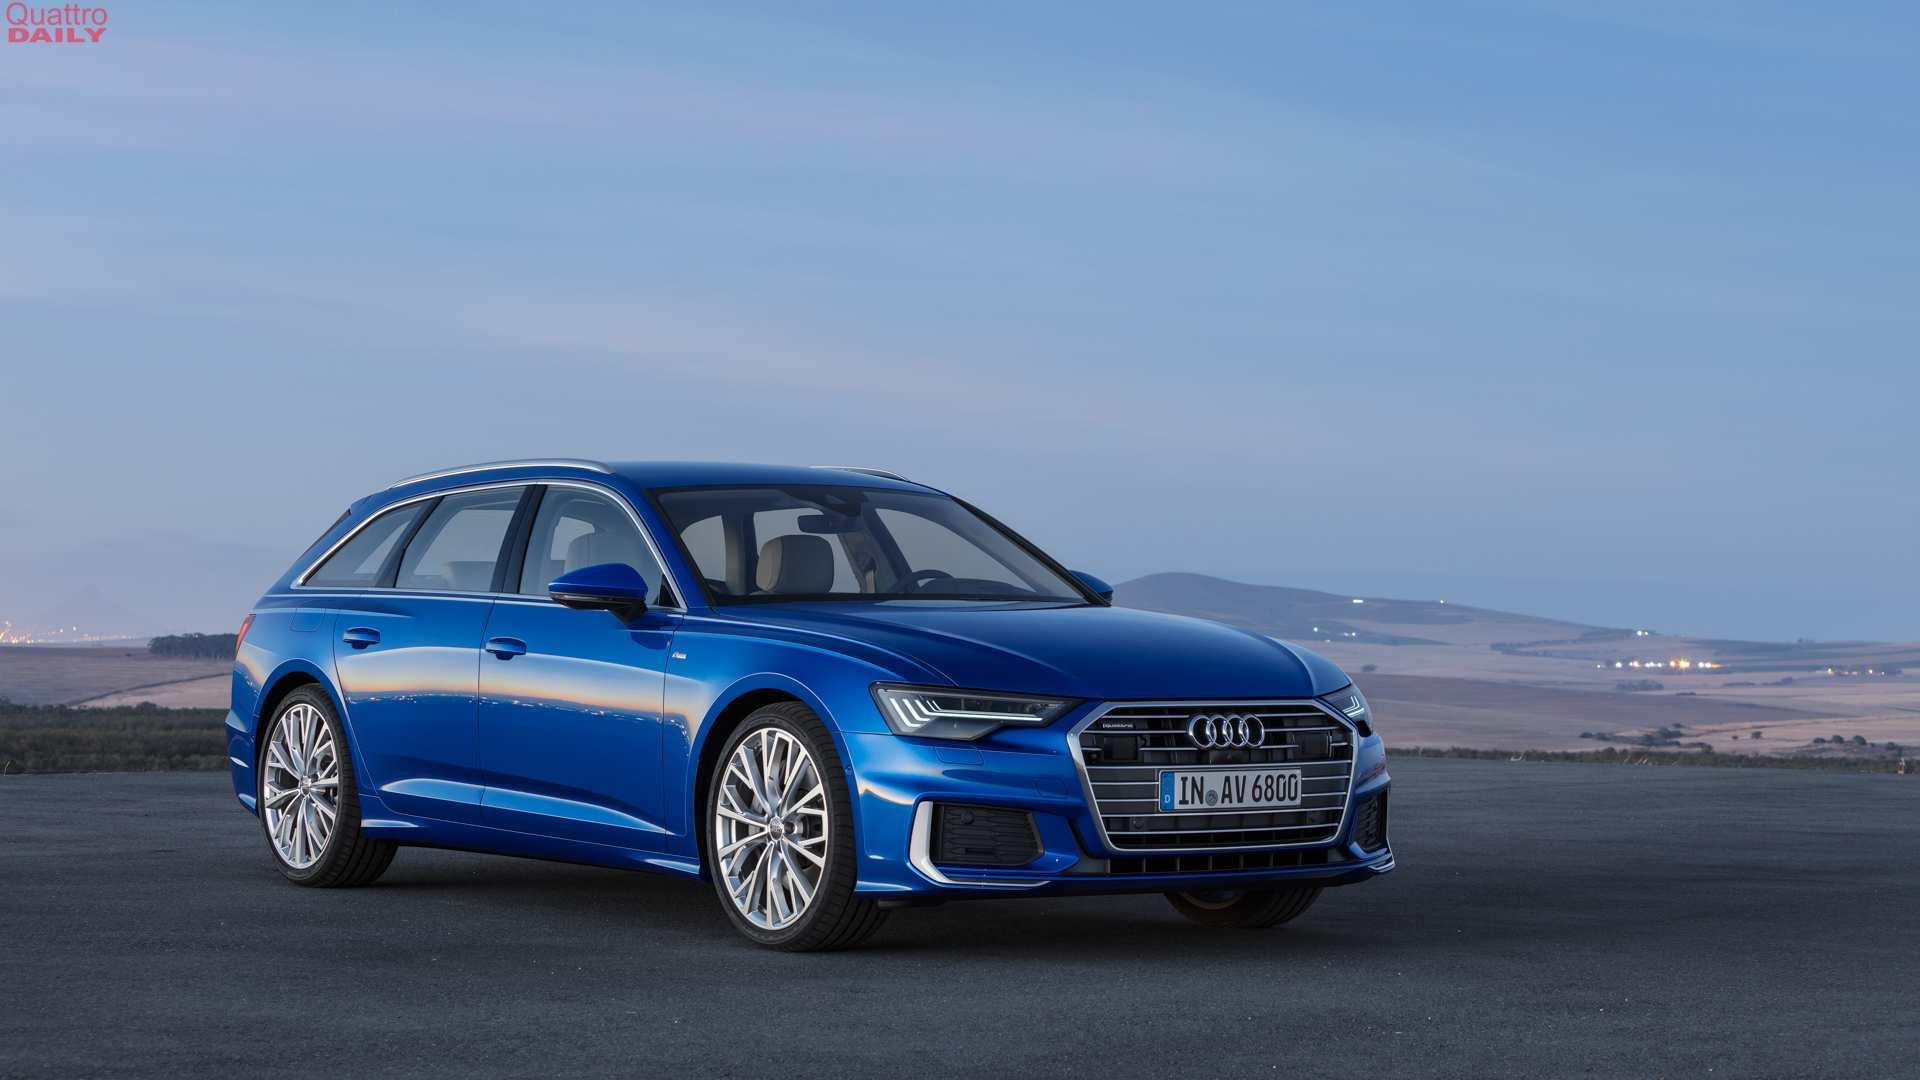 28 New 2020 Audi A6 Allroad Usa Release